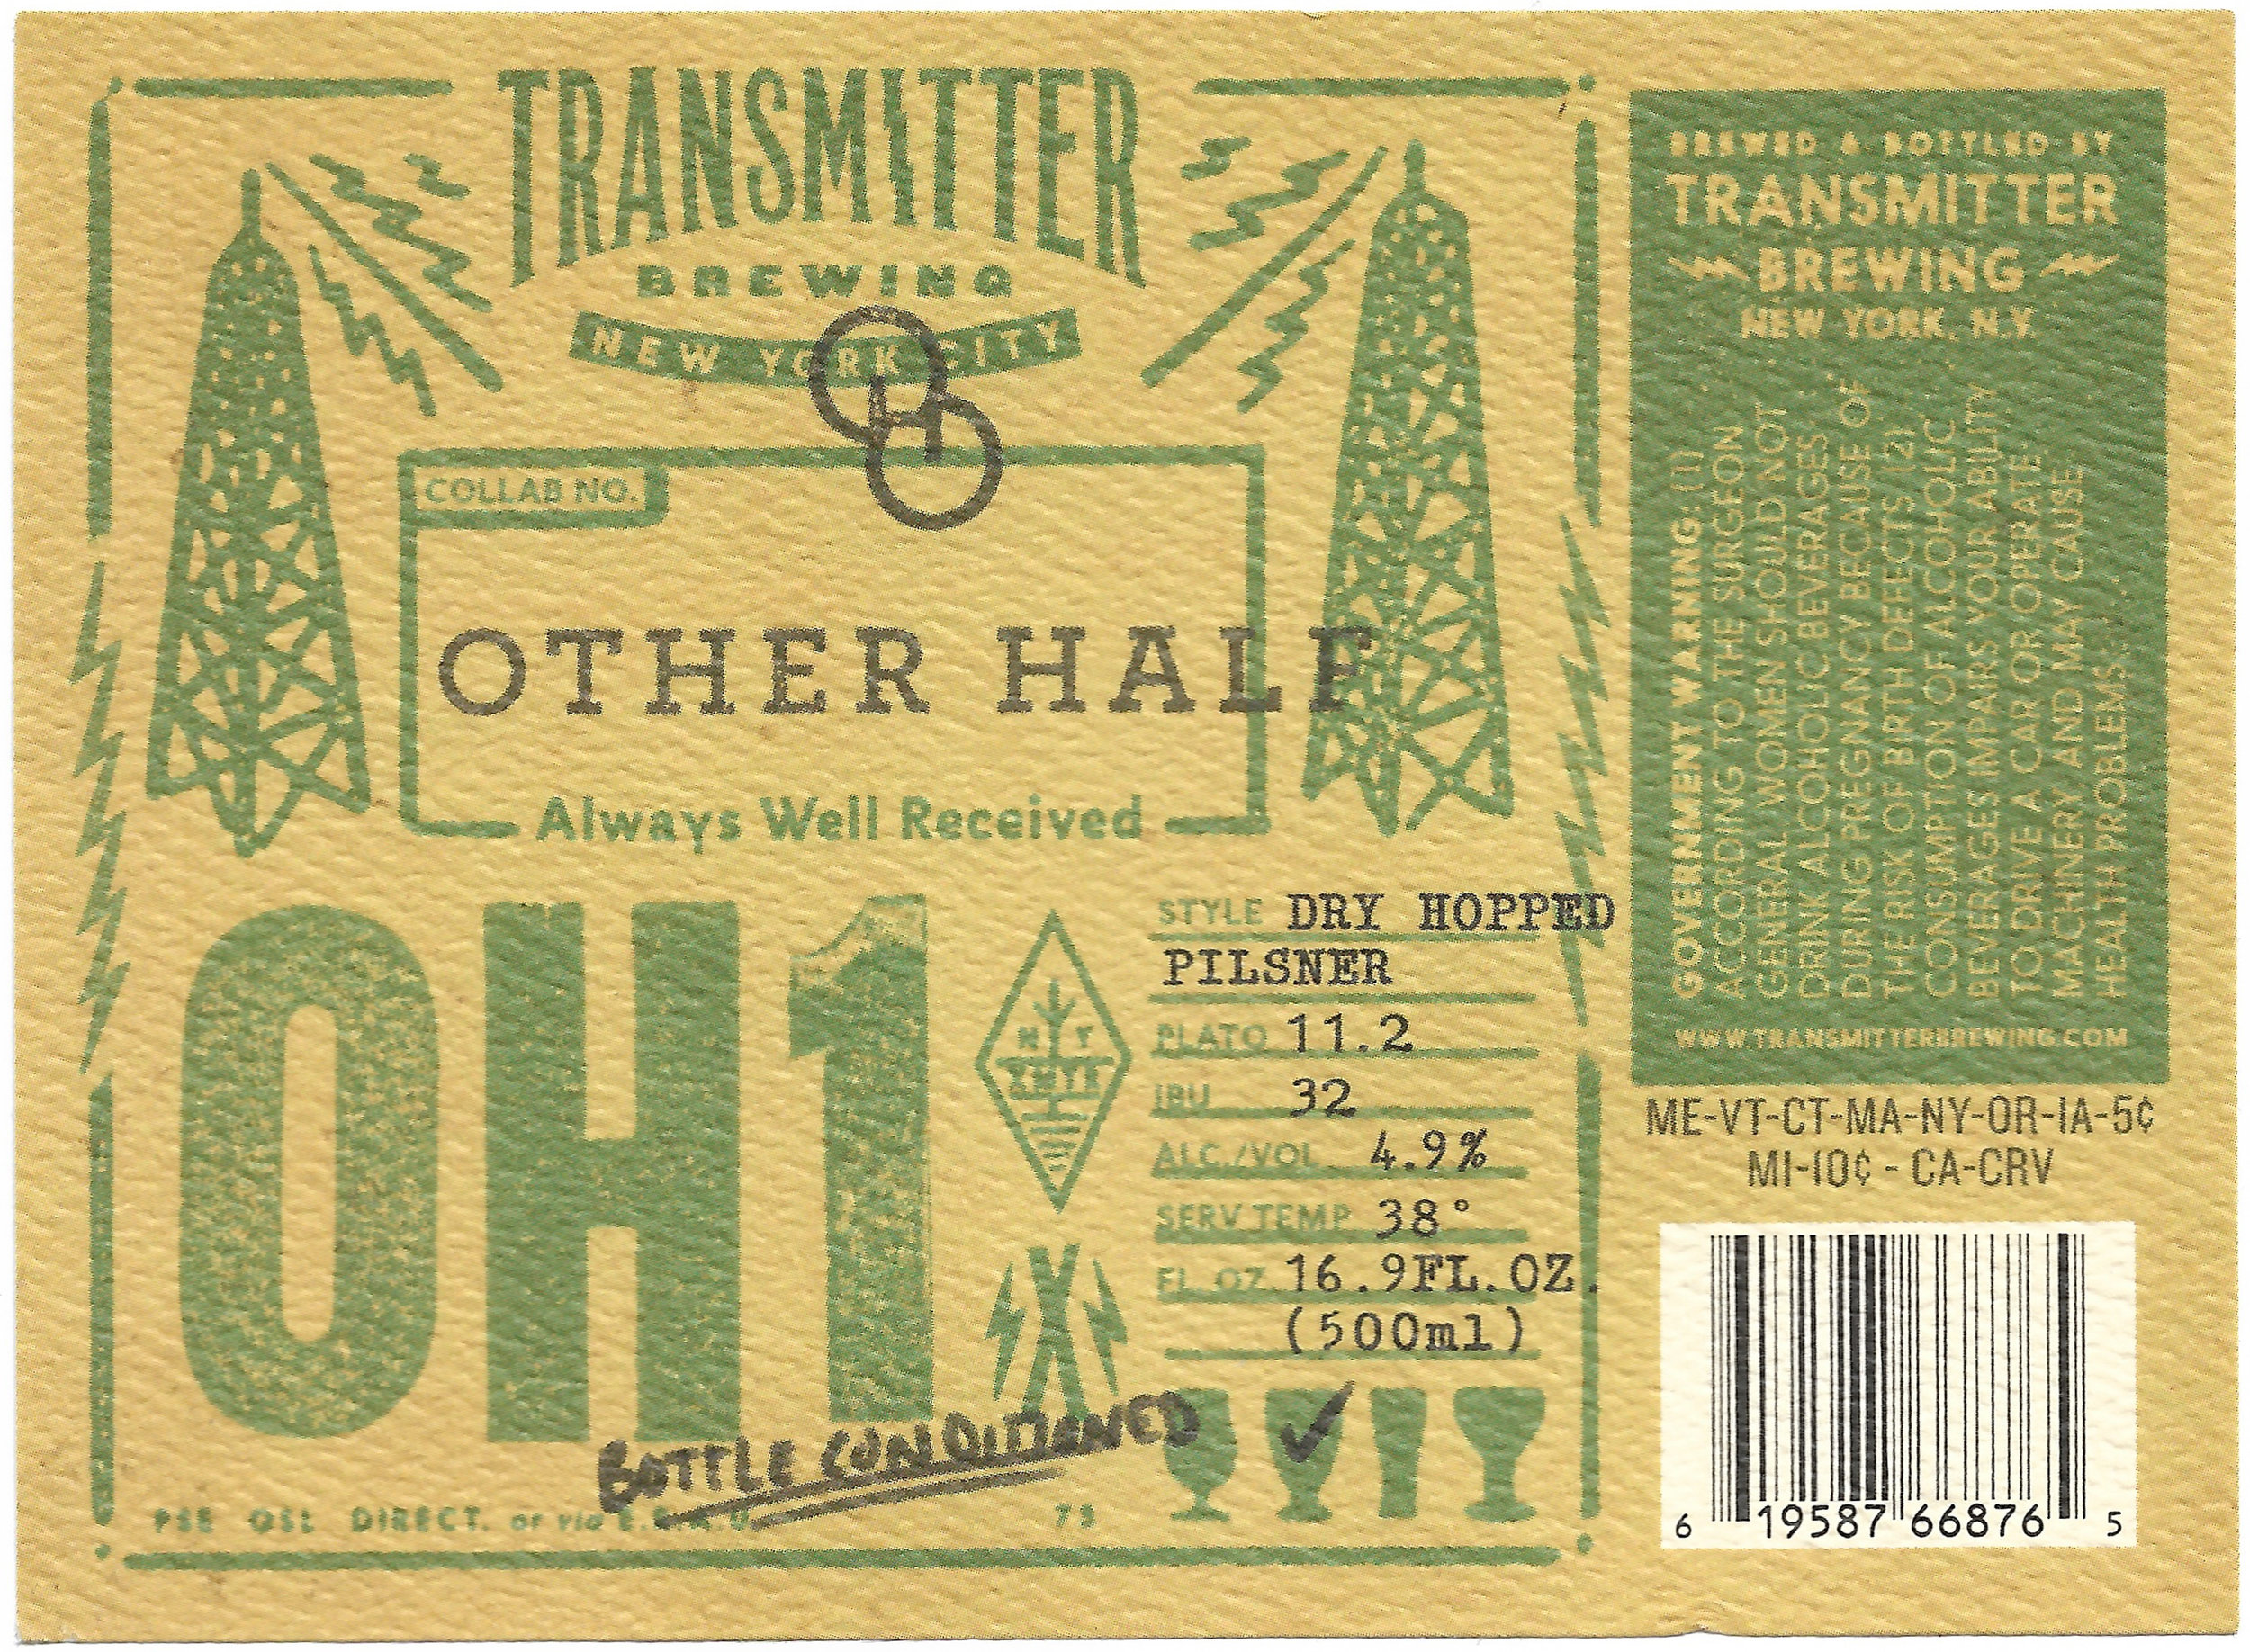 OH1 by Jeff Rogers for Transmitter Brewing & Other Half.jpg